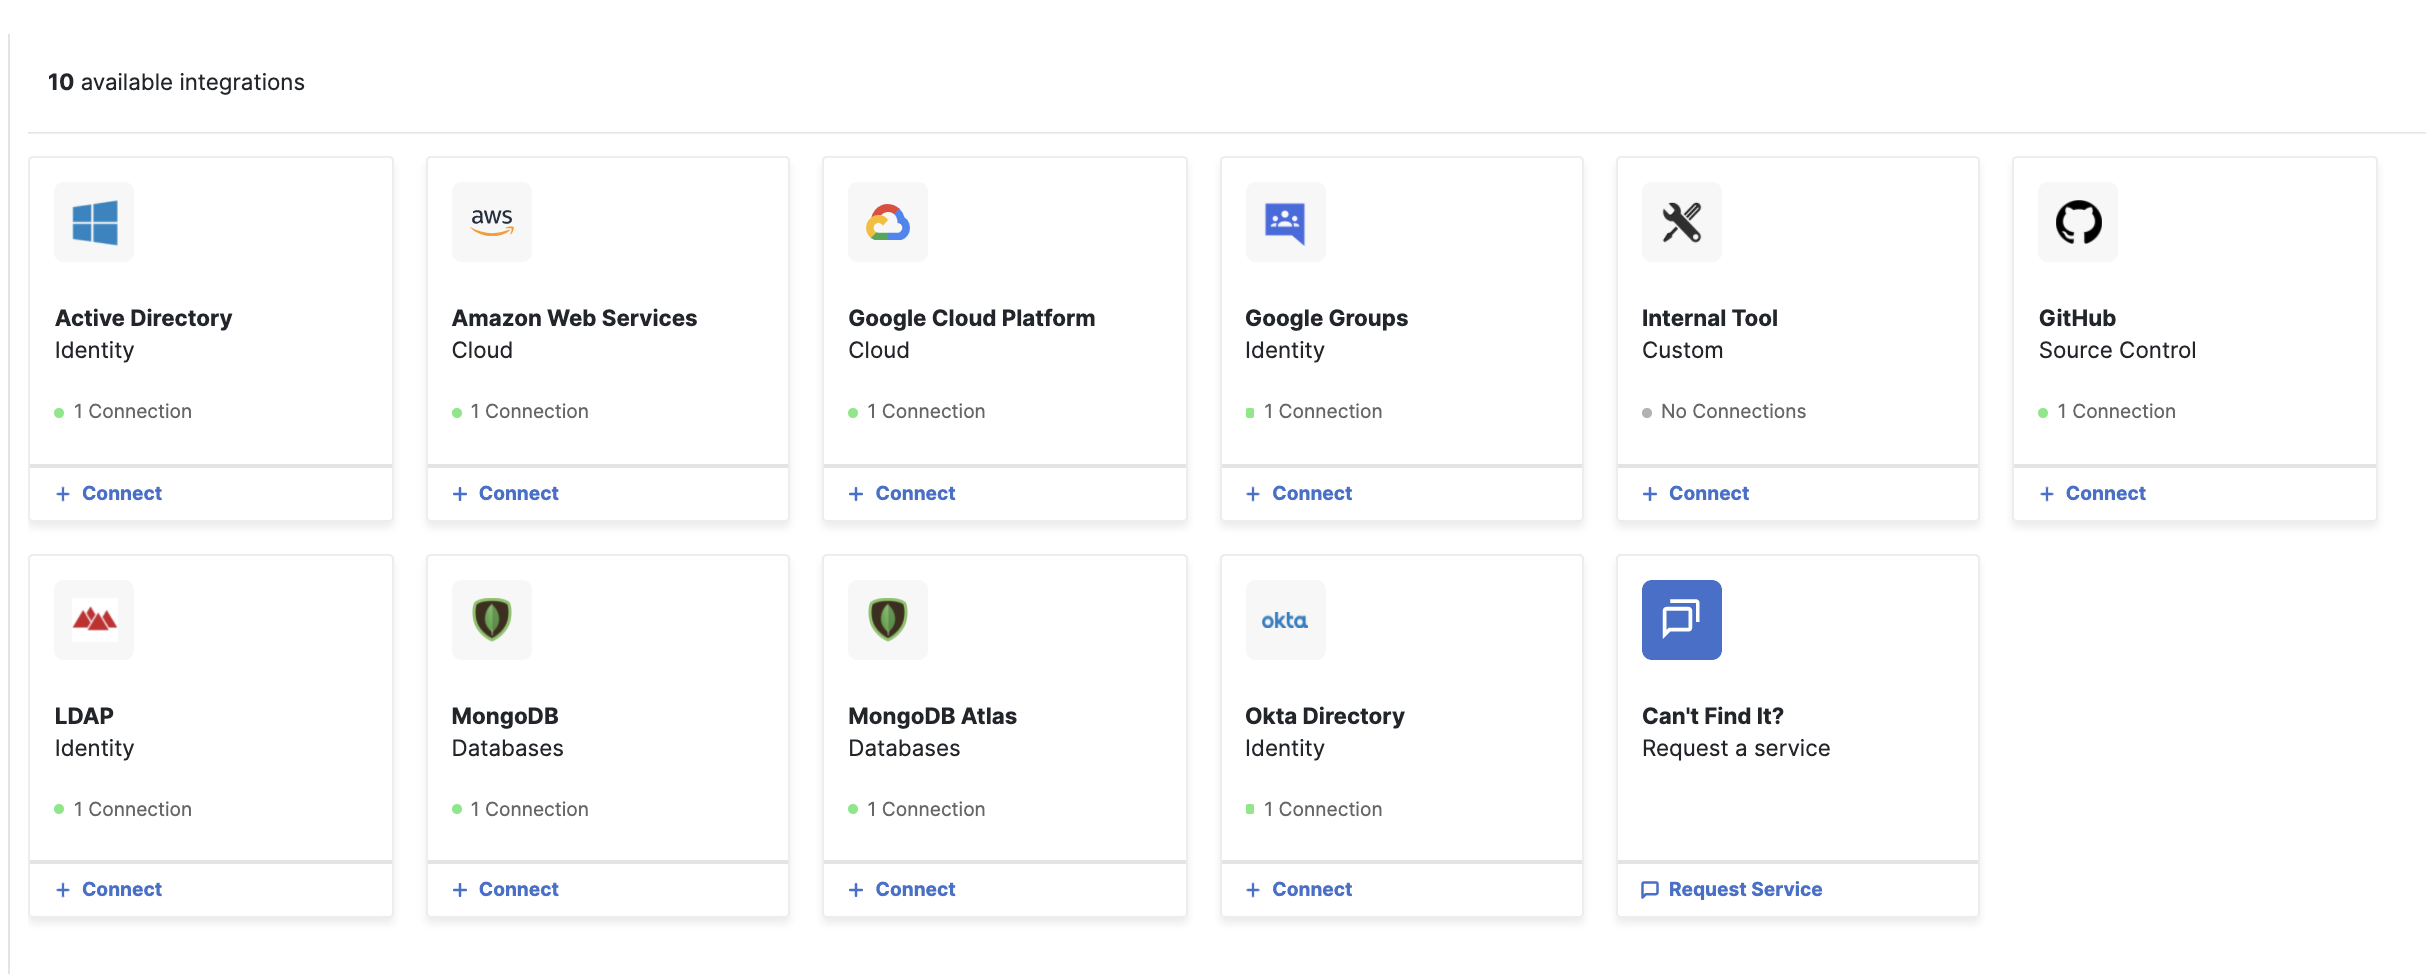 Click on the MongoDB Atlas tile to get started